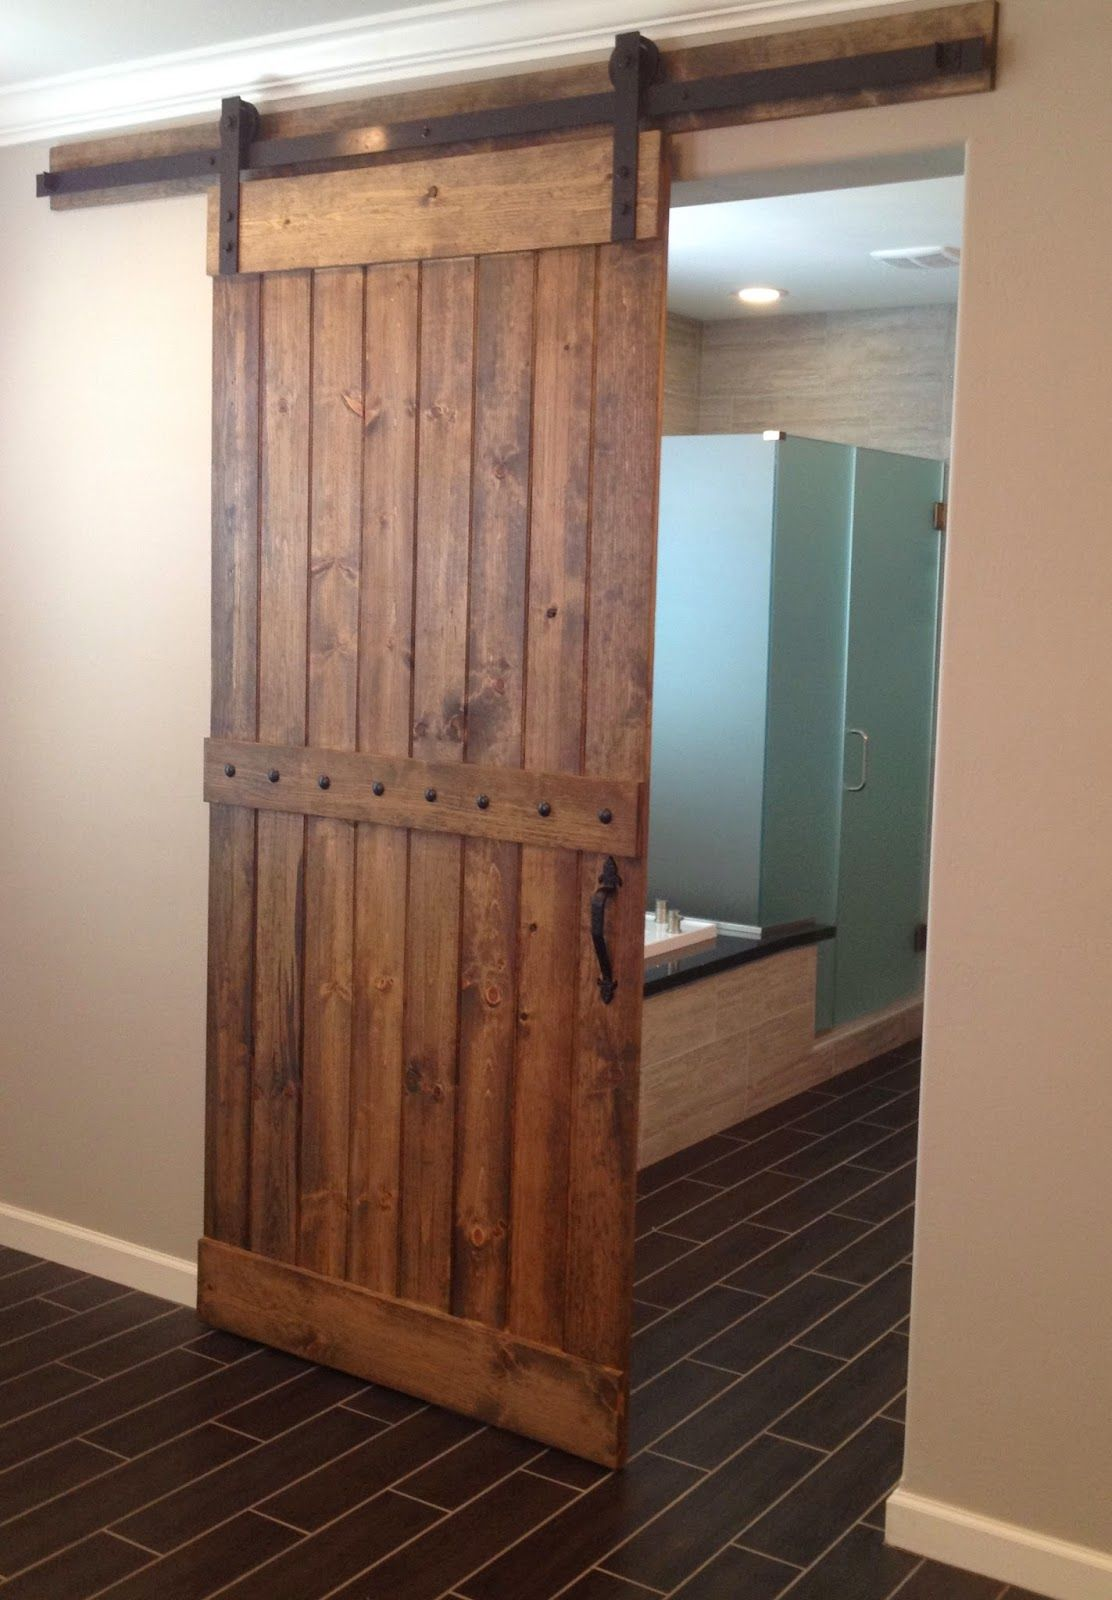 arizona barn doors a sampling of our barn doors barn doors ideas with rustic chic home office and barn homes for sale ohio traditional home alluring rustic barns style for your home interior design ideas